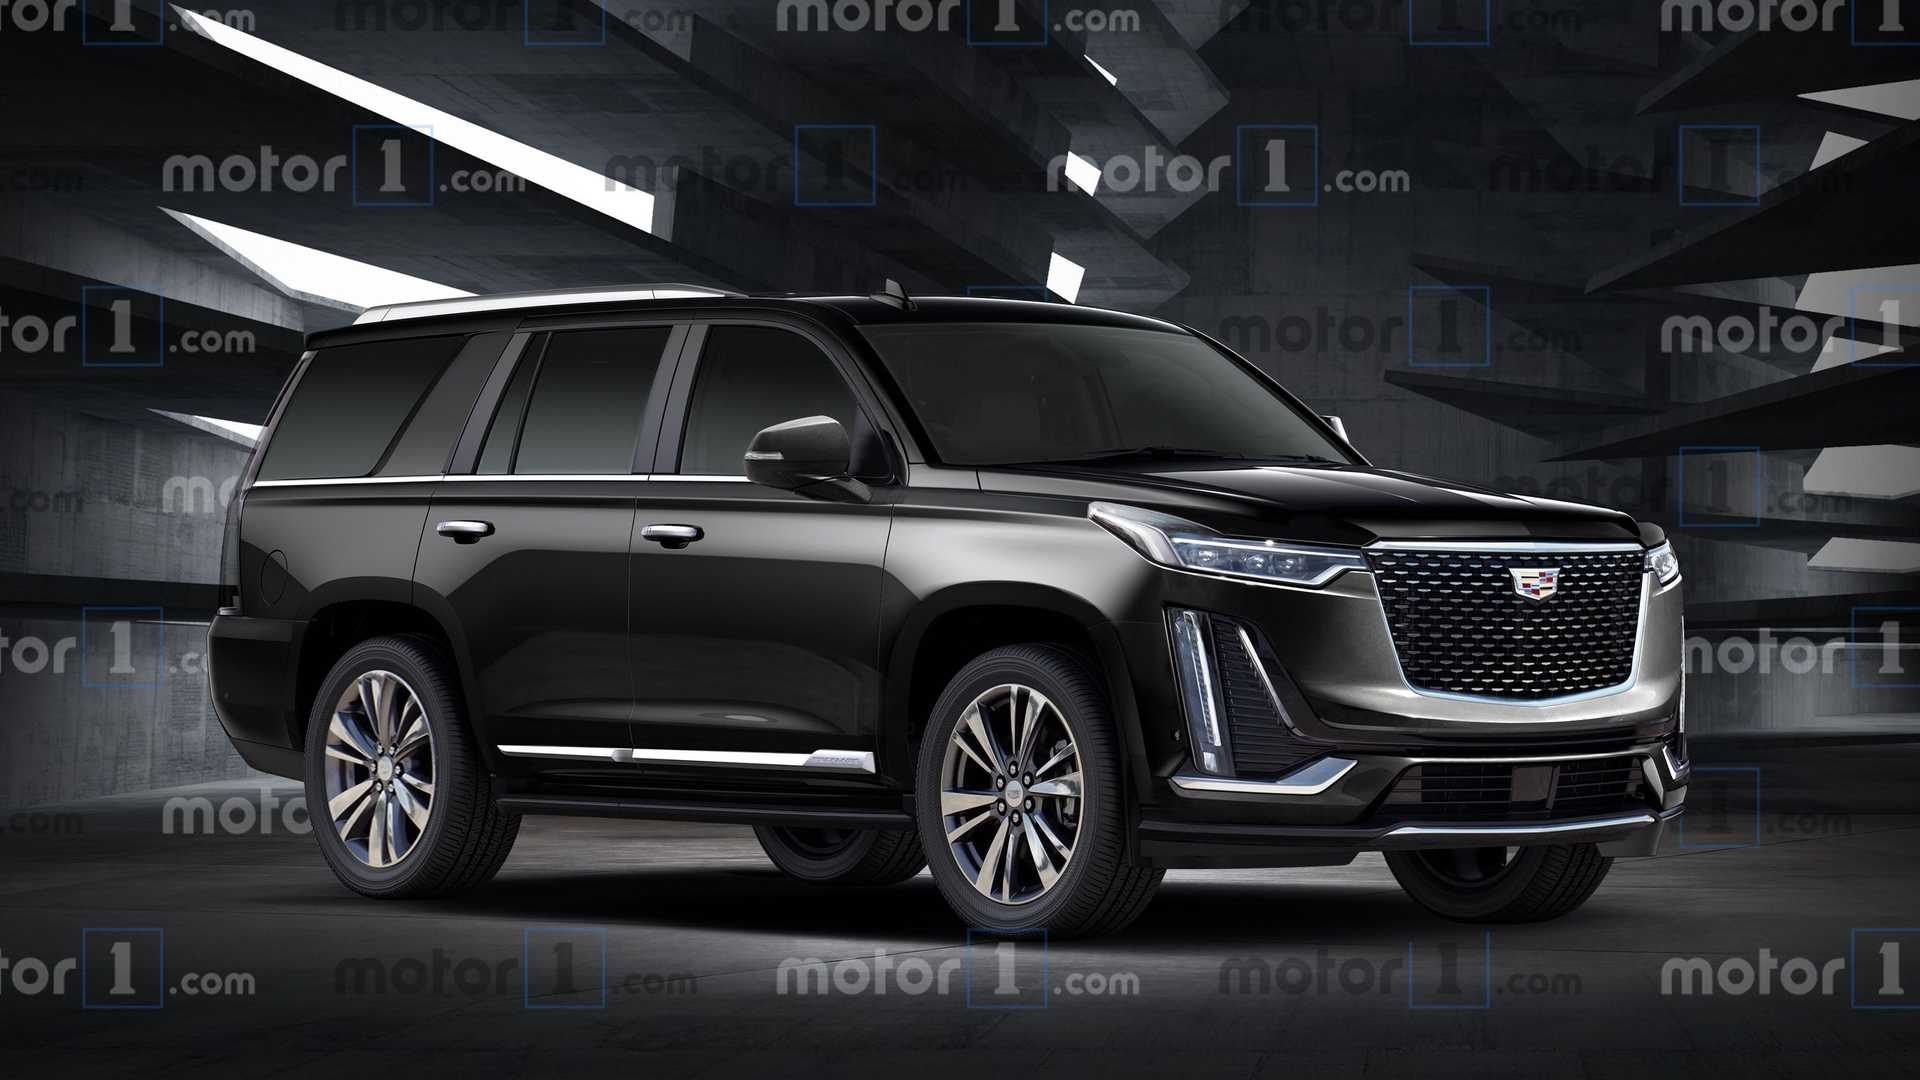 Cadillac Escalade Rendering Shows Next Gen's New Lines